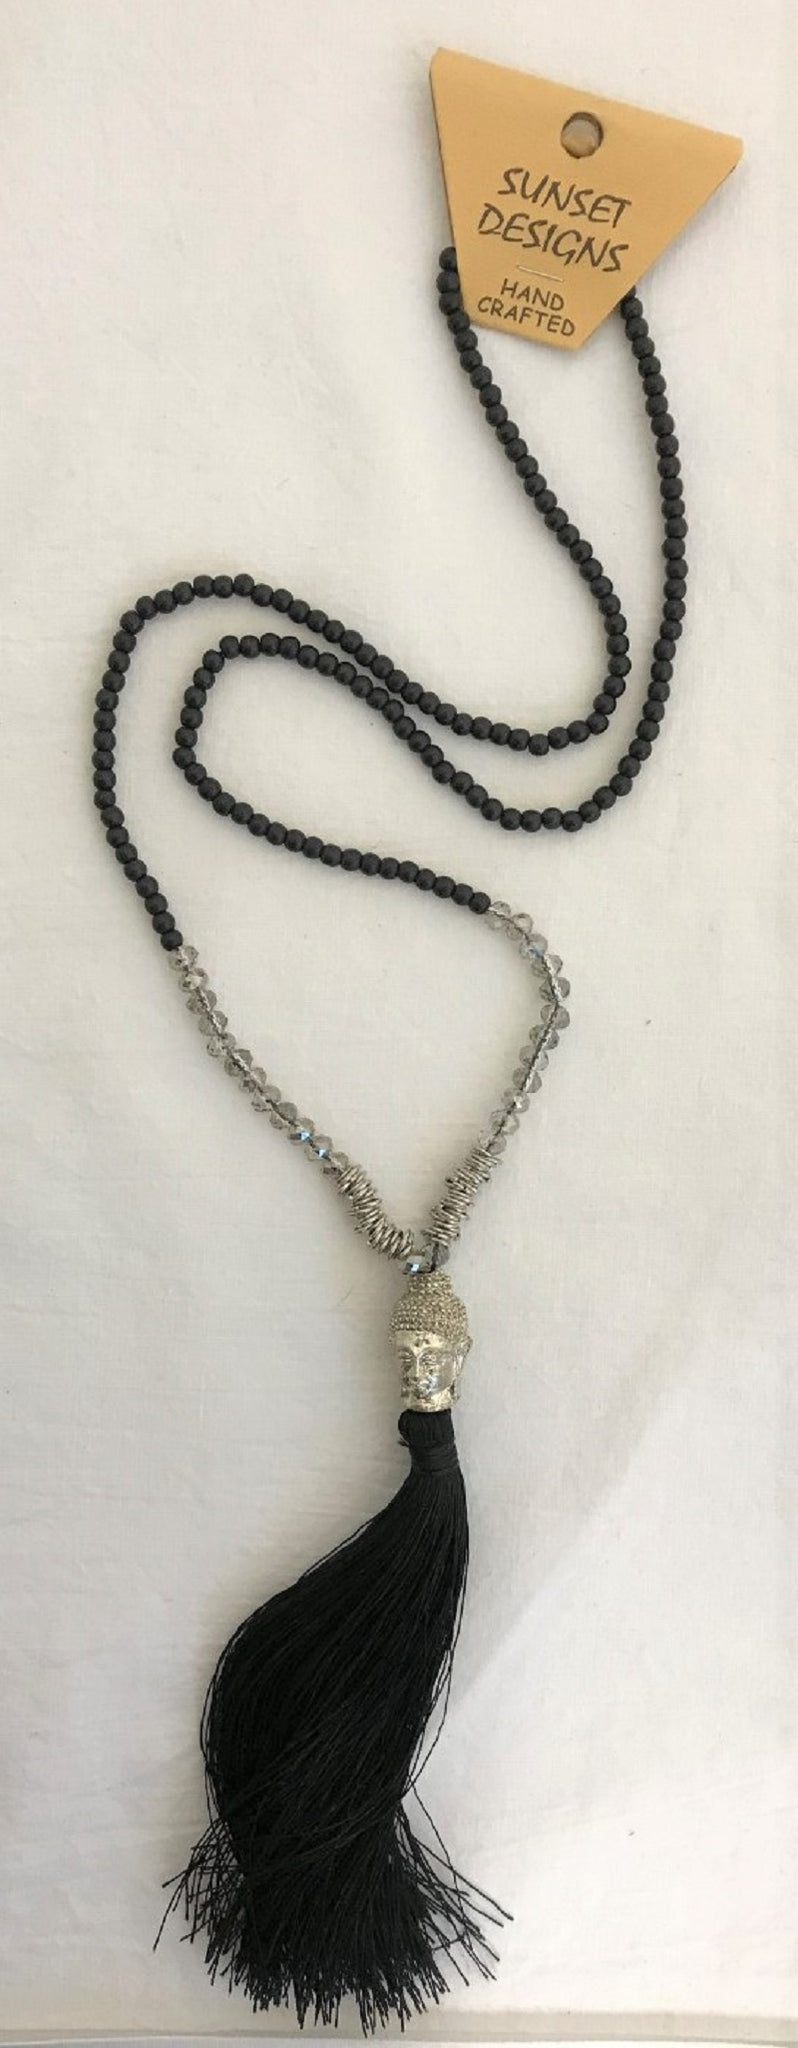 necklace - black - silver budha head - clear crystal/metal ring beads - string tassle